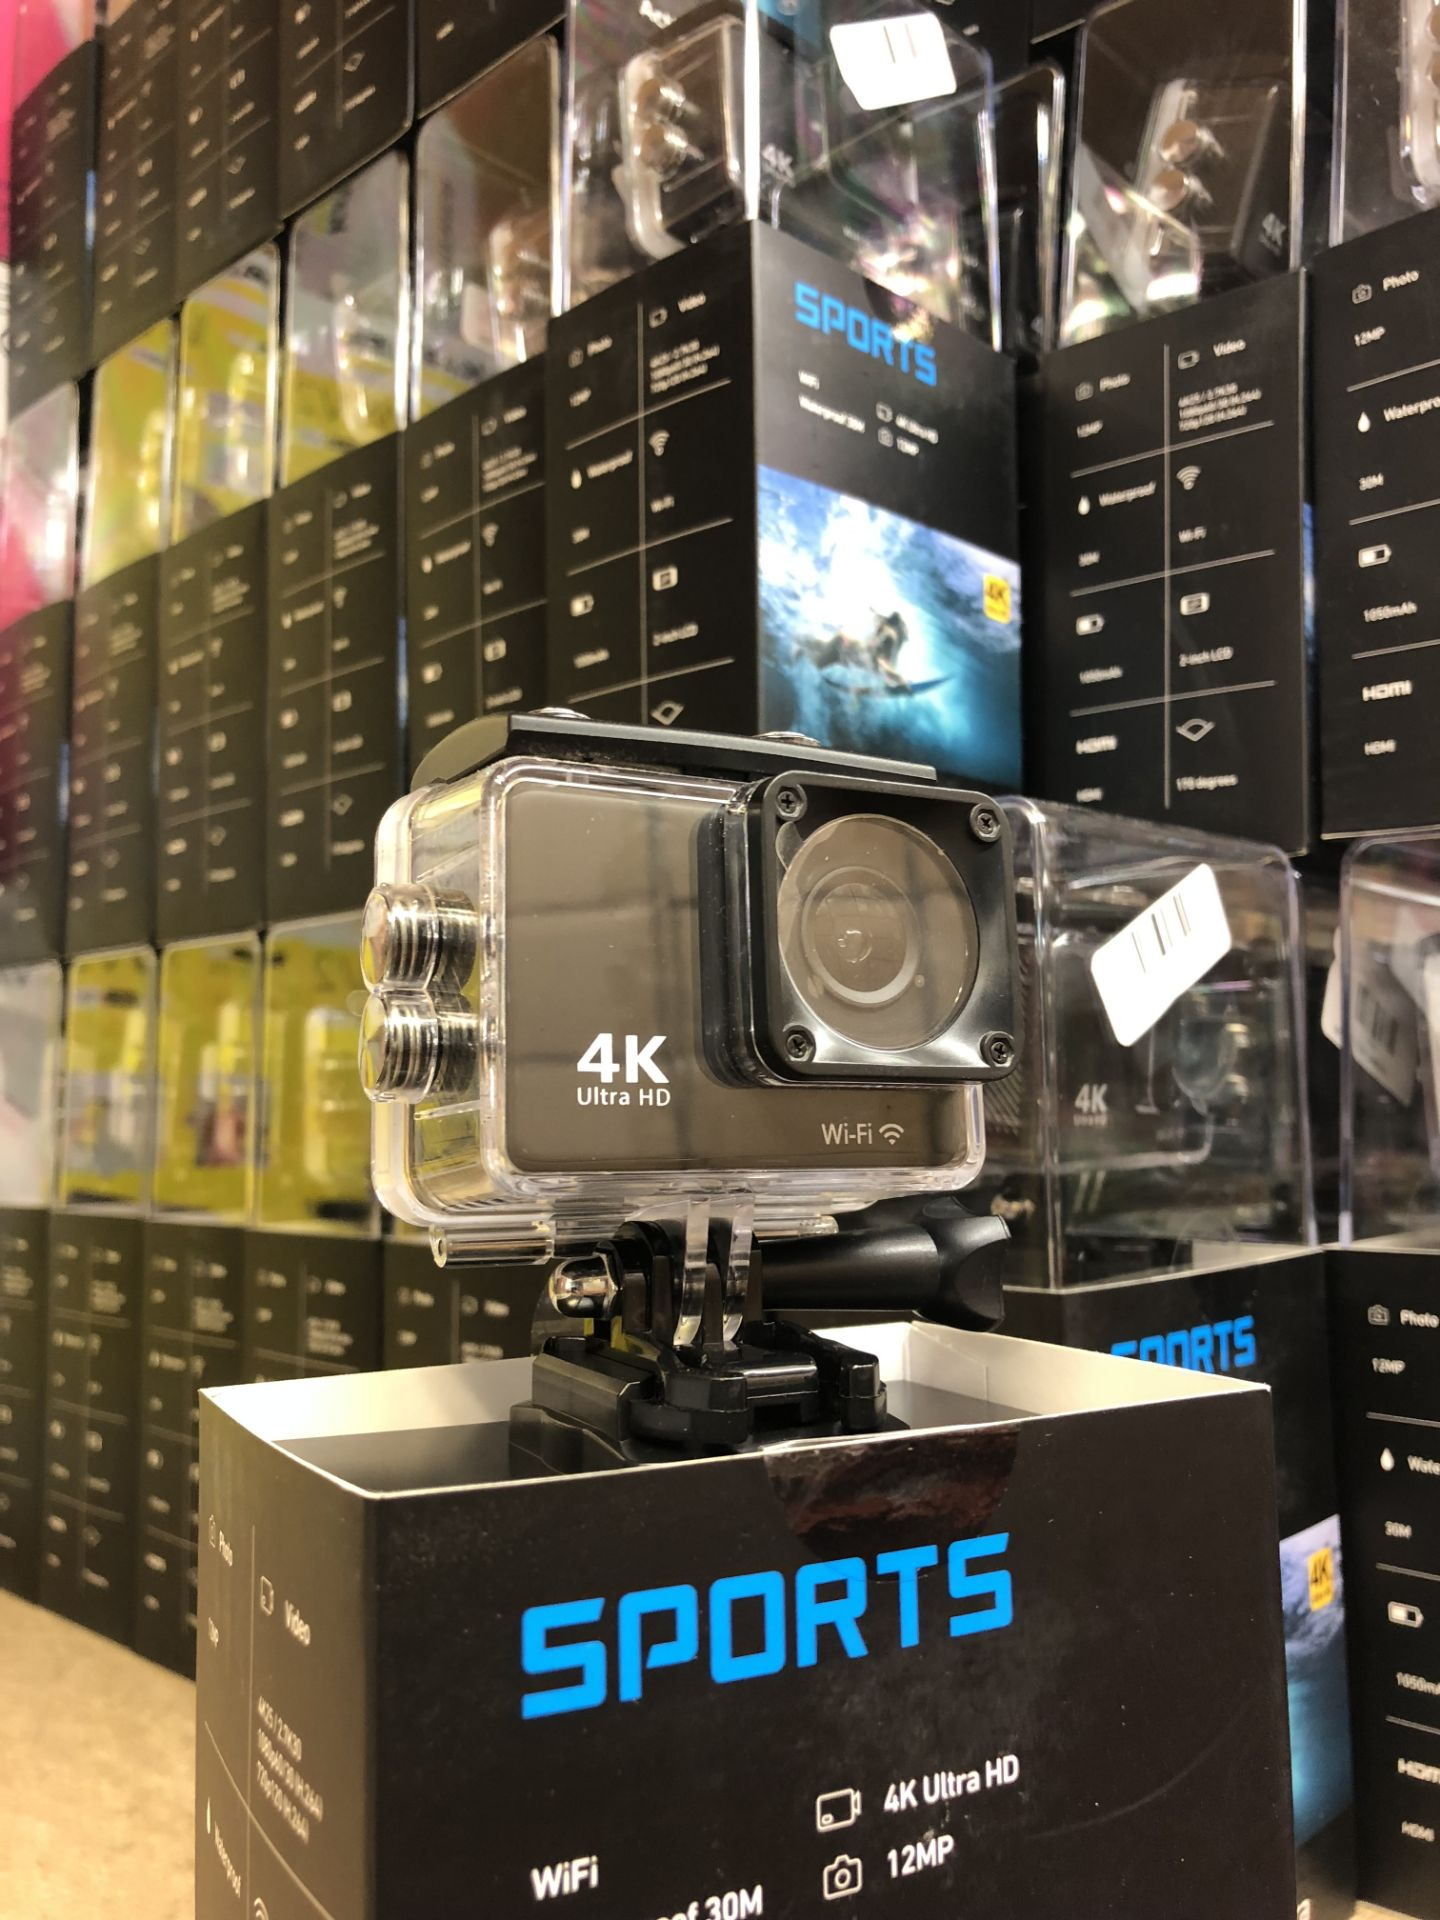 Lot 15963 - Brand New Full Ultra HD 4K Waterproof WiFi Action Camera With Audio - Box And Accessories - 30m